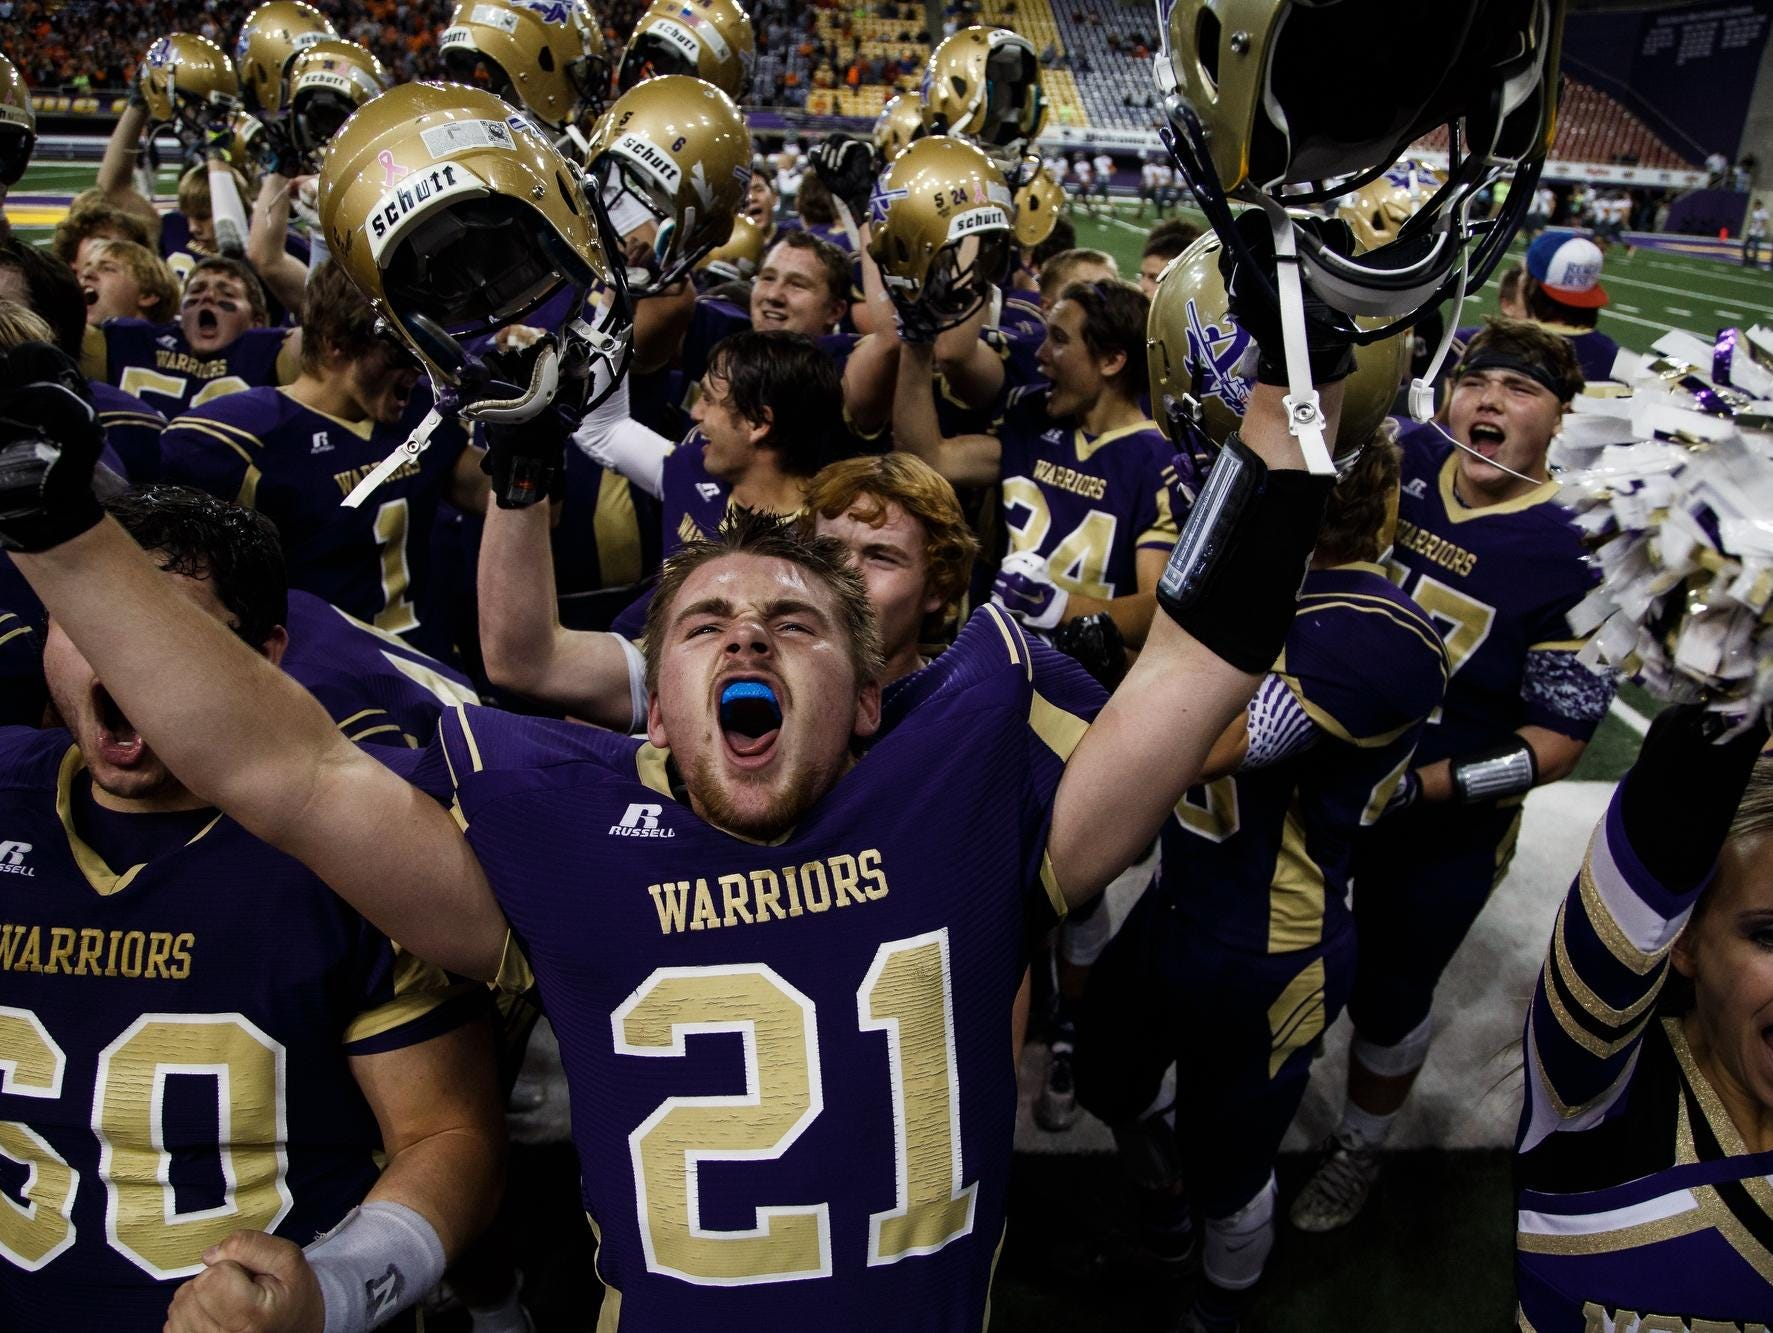 Norwalk's Zachary Cook celebrates with his team after Thursday's semifinal win over Sergeant Bluff-Luton at the UNI-Dome.